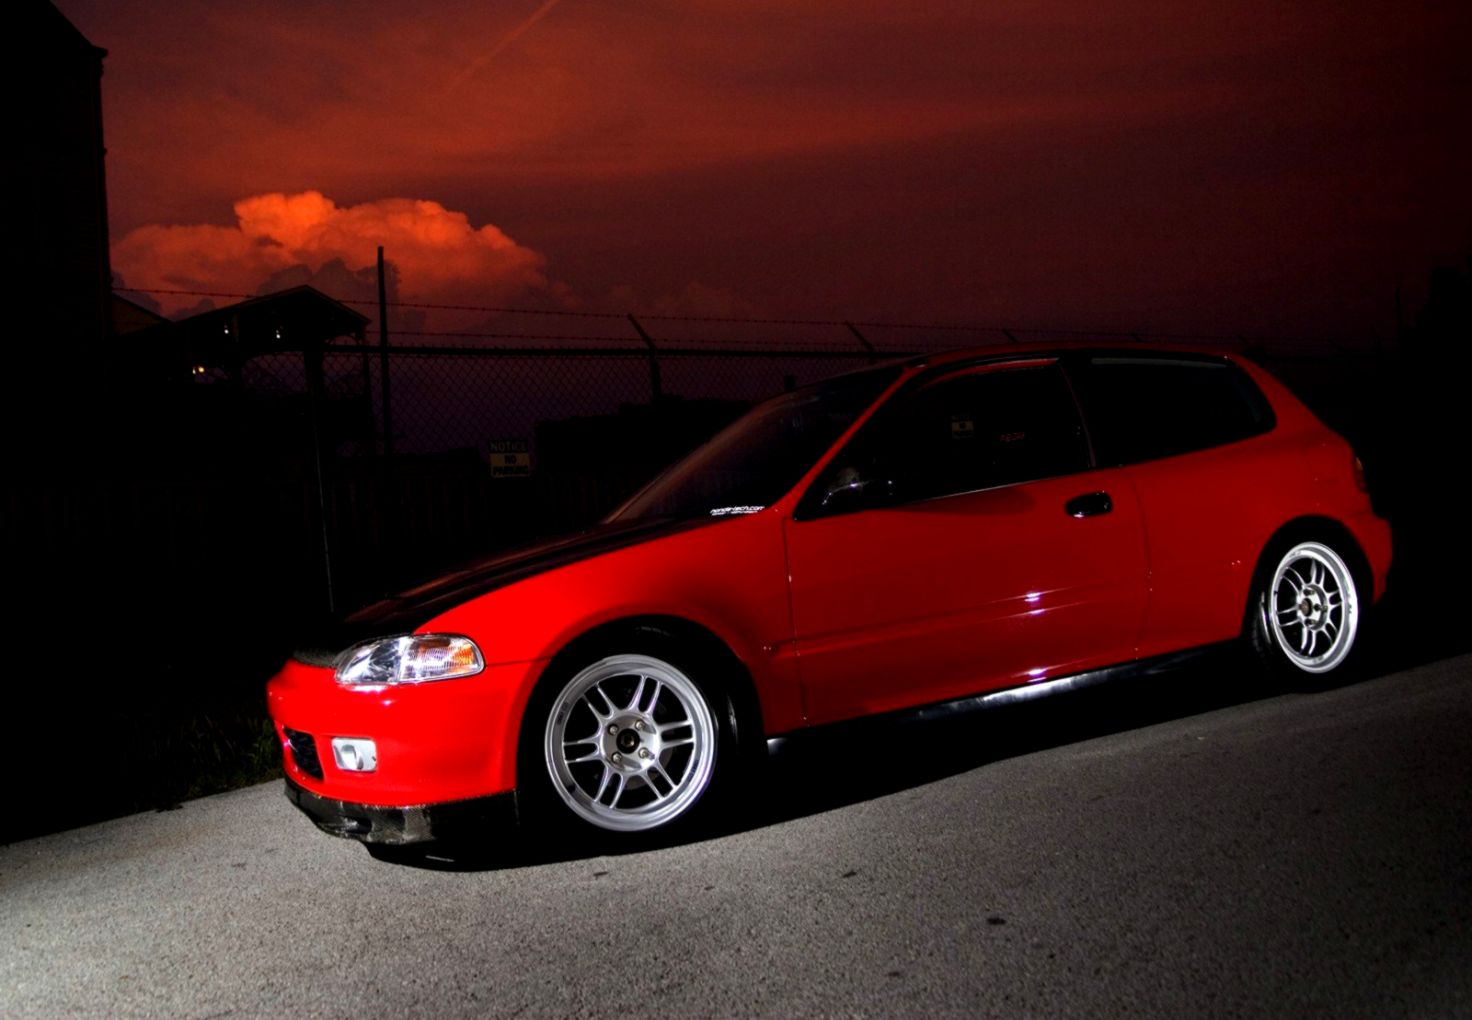 Honda Civic Car Tuning Parking Hd Wallpaper Wallpapers Corner